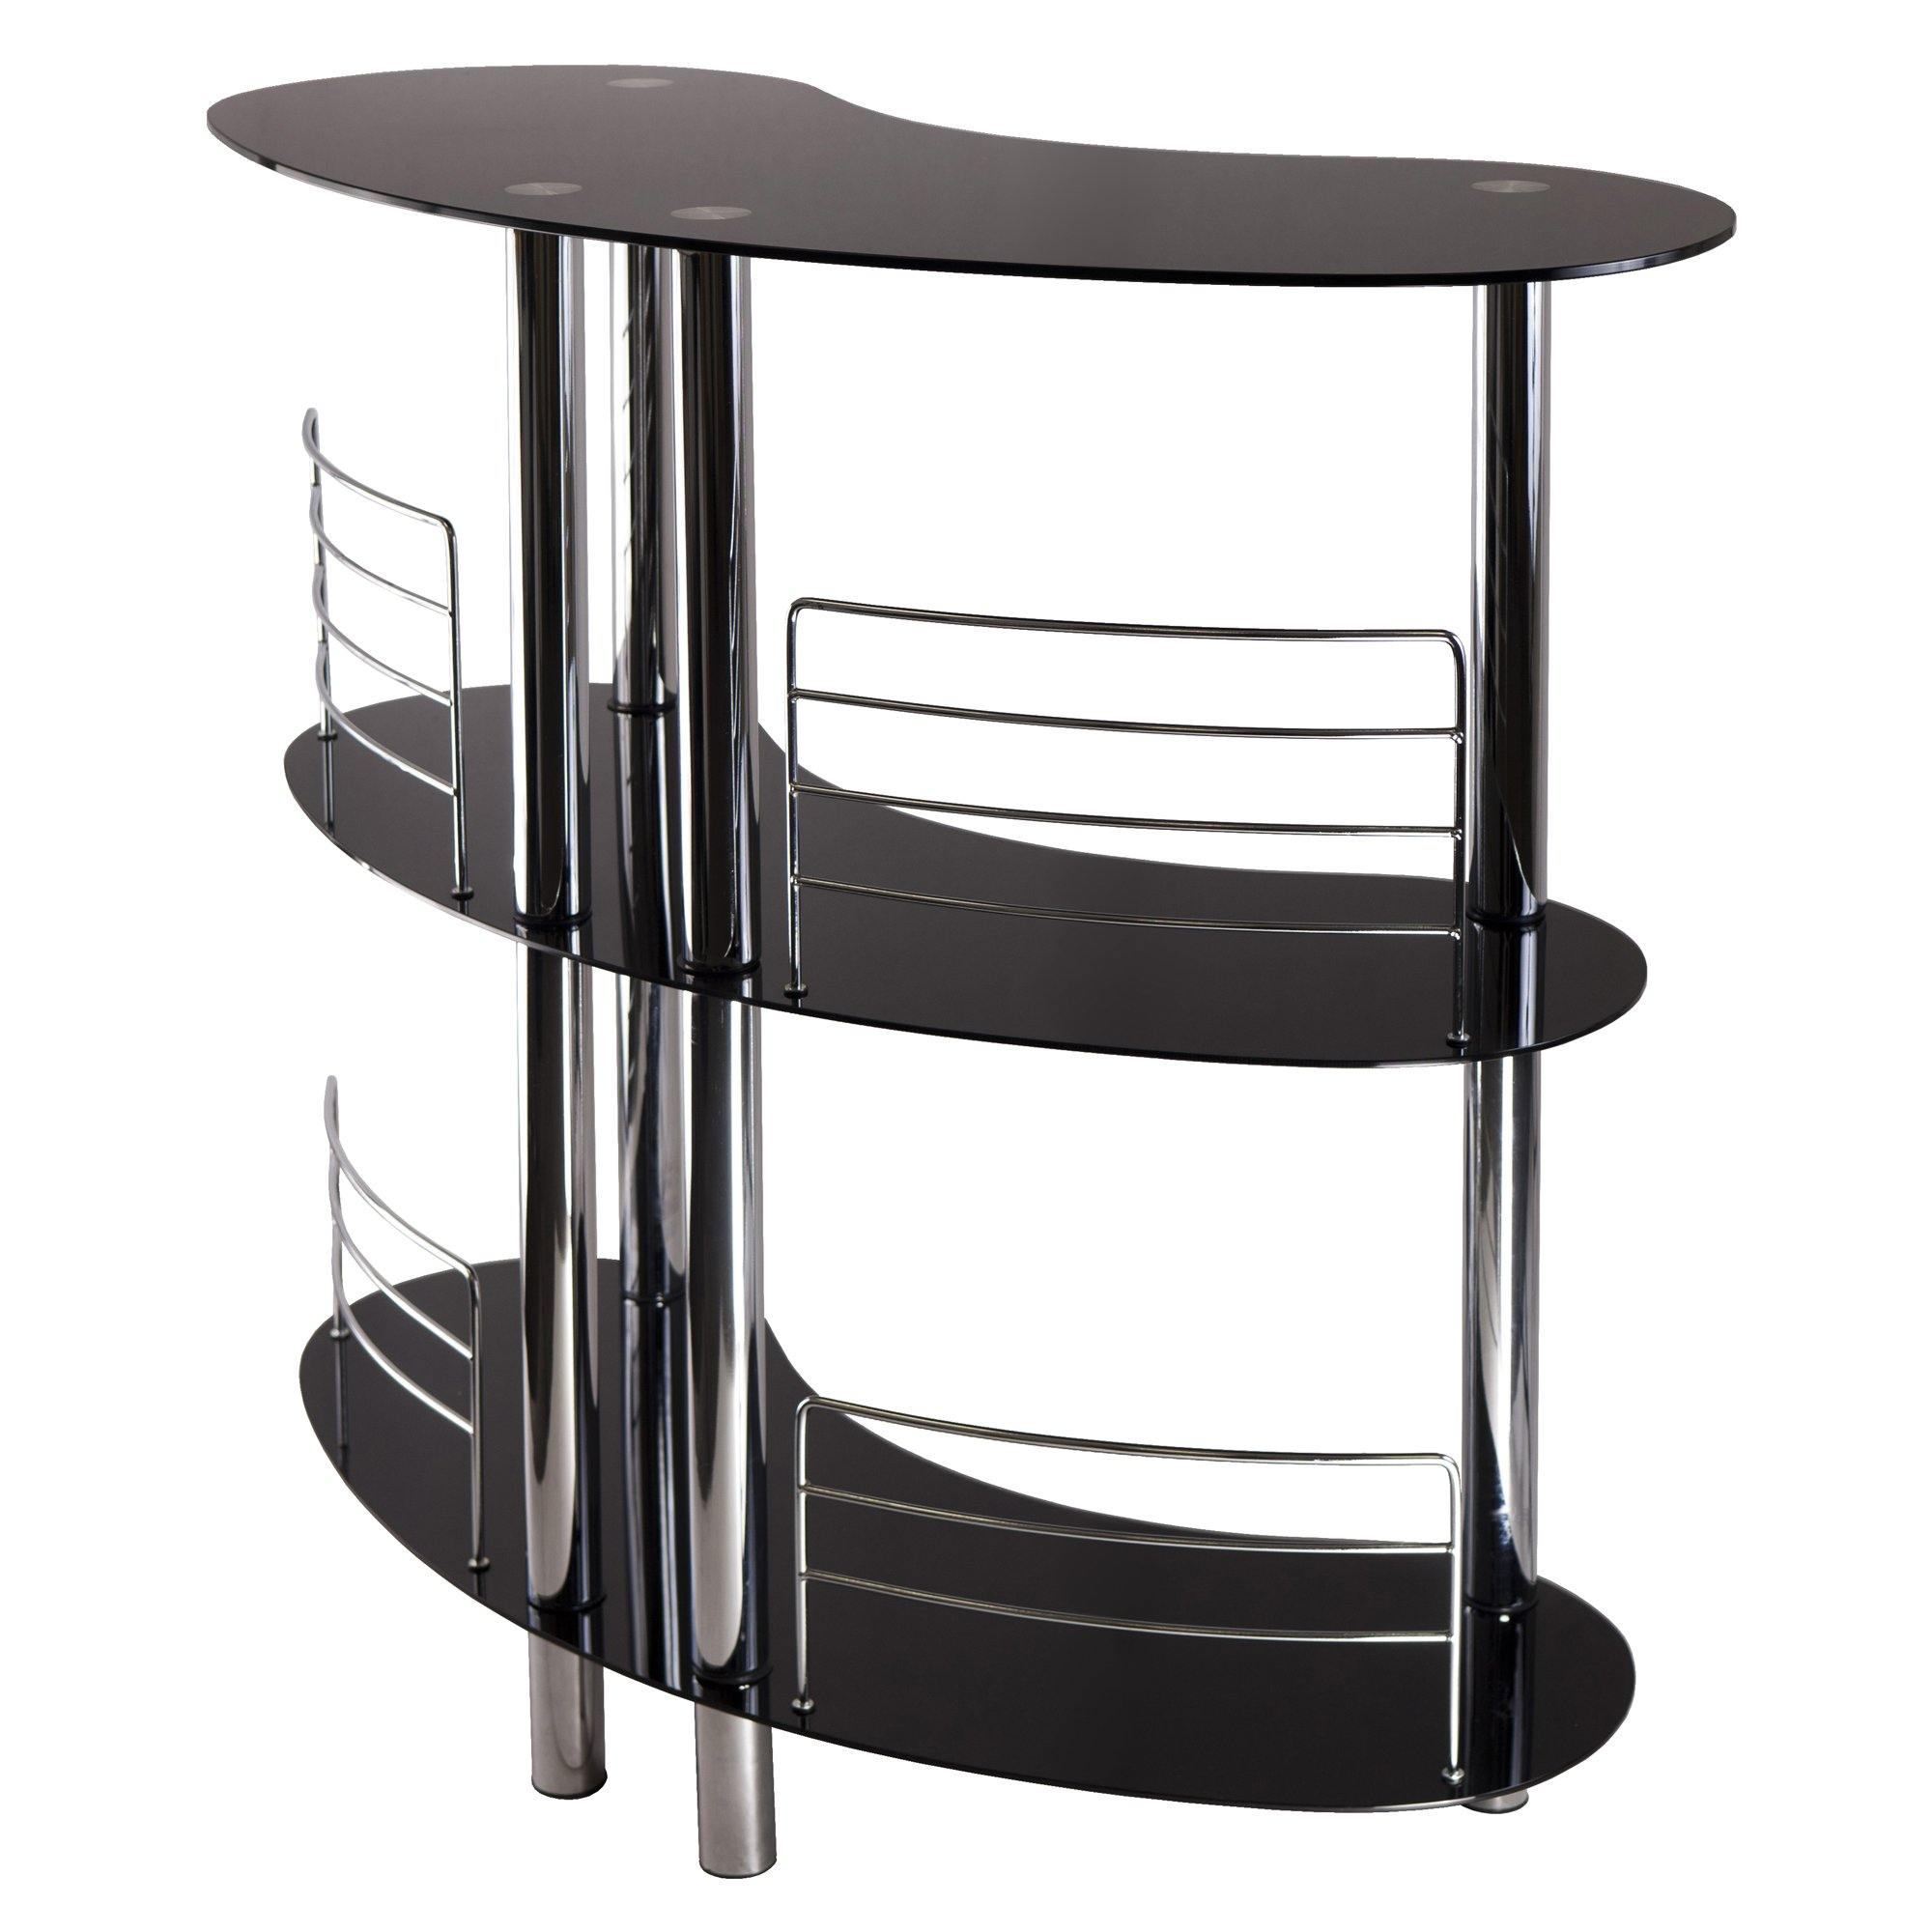 Bar Wine Storage, Black Glass And Metal Frame - My USA Furniture